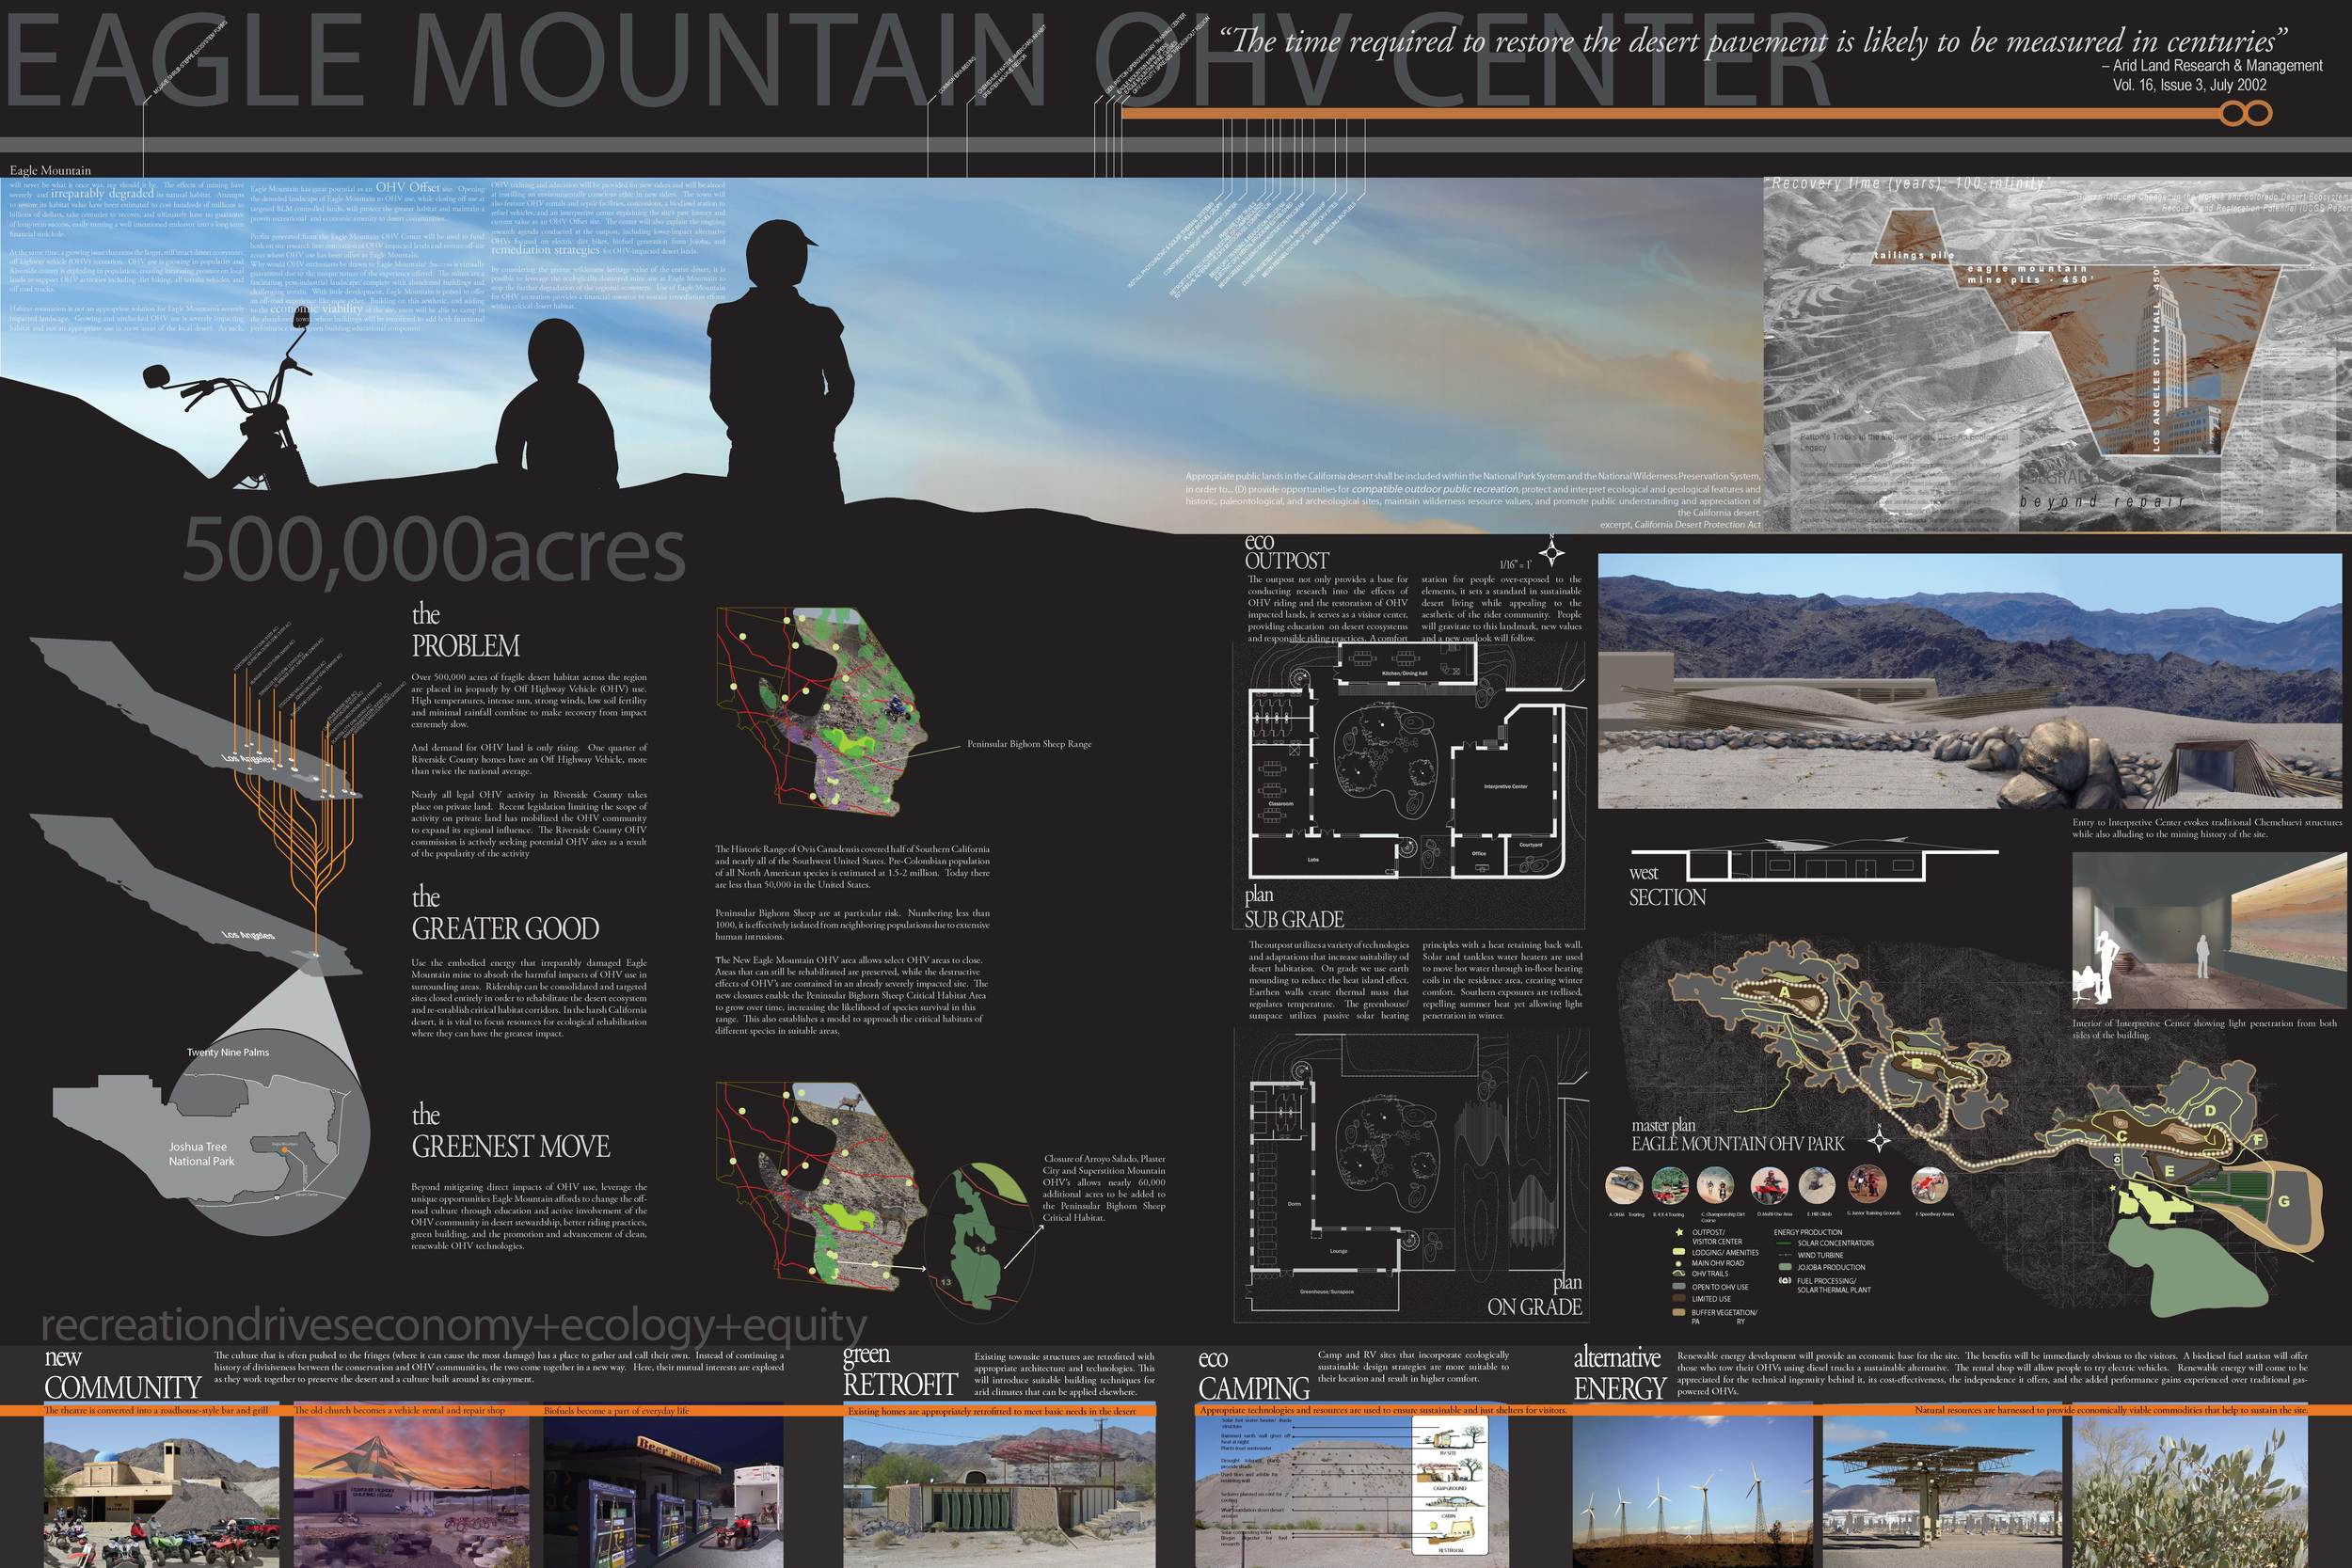 The competition entry board completed by Matt Kizu, Sam Jenniches,Kai Craig, Patrick Johnston, andScott Kleinrock. (click for lightbox view of image)